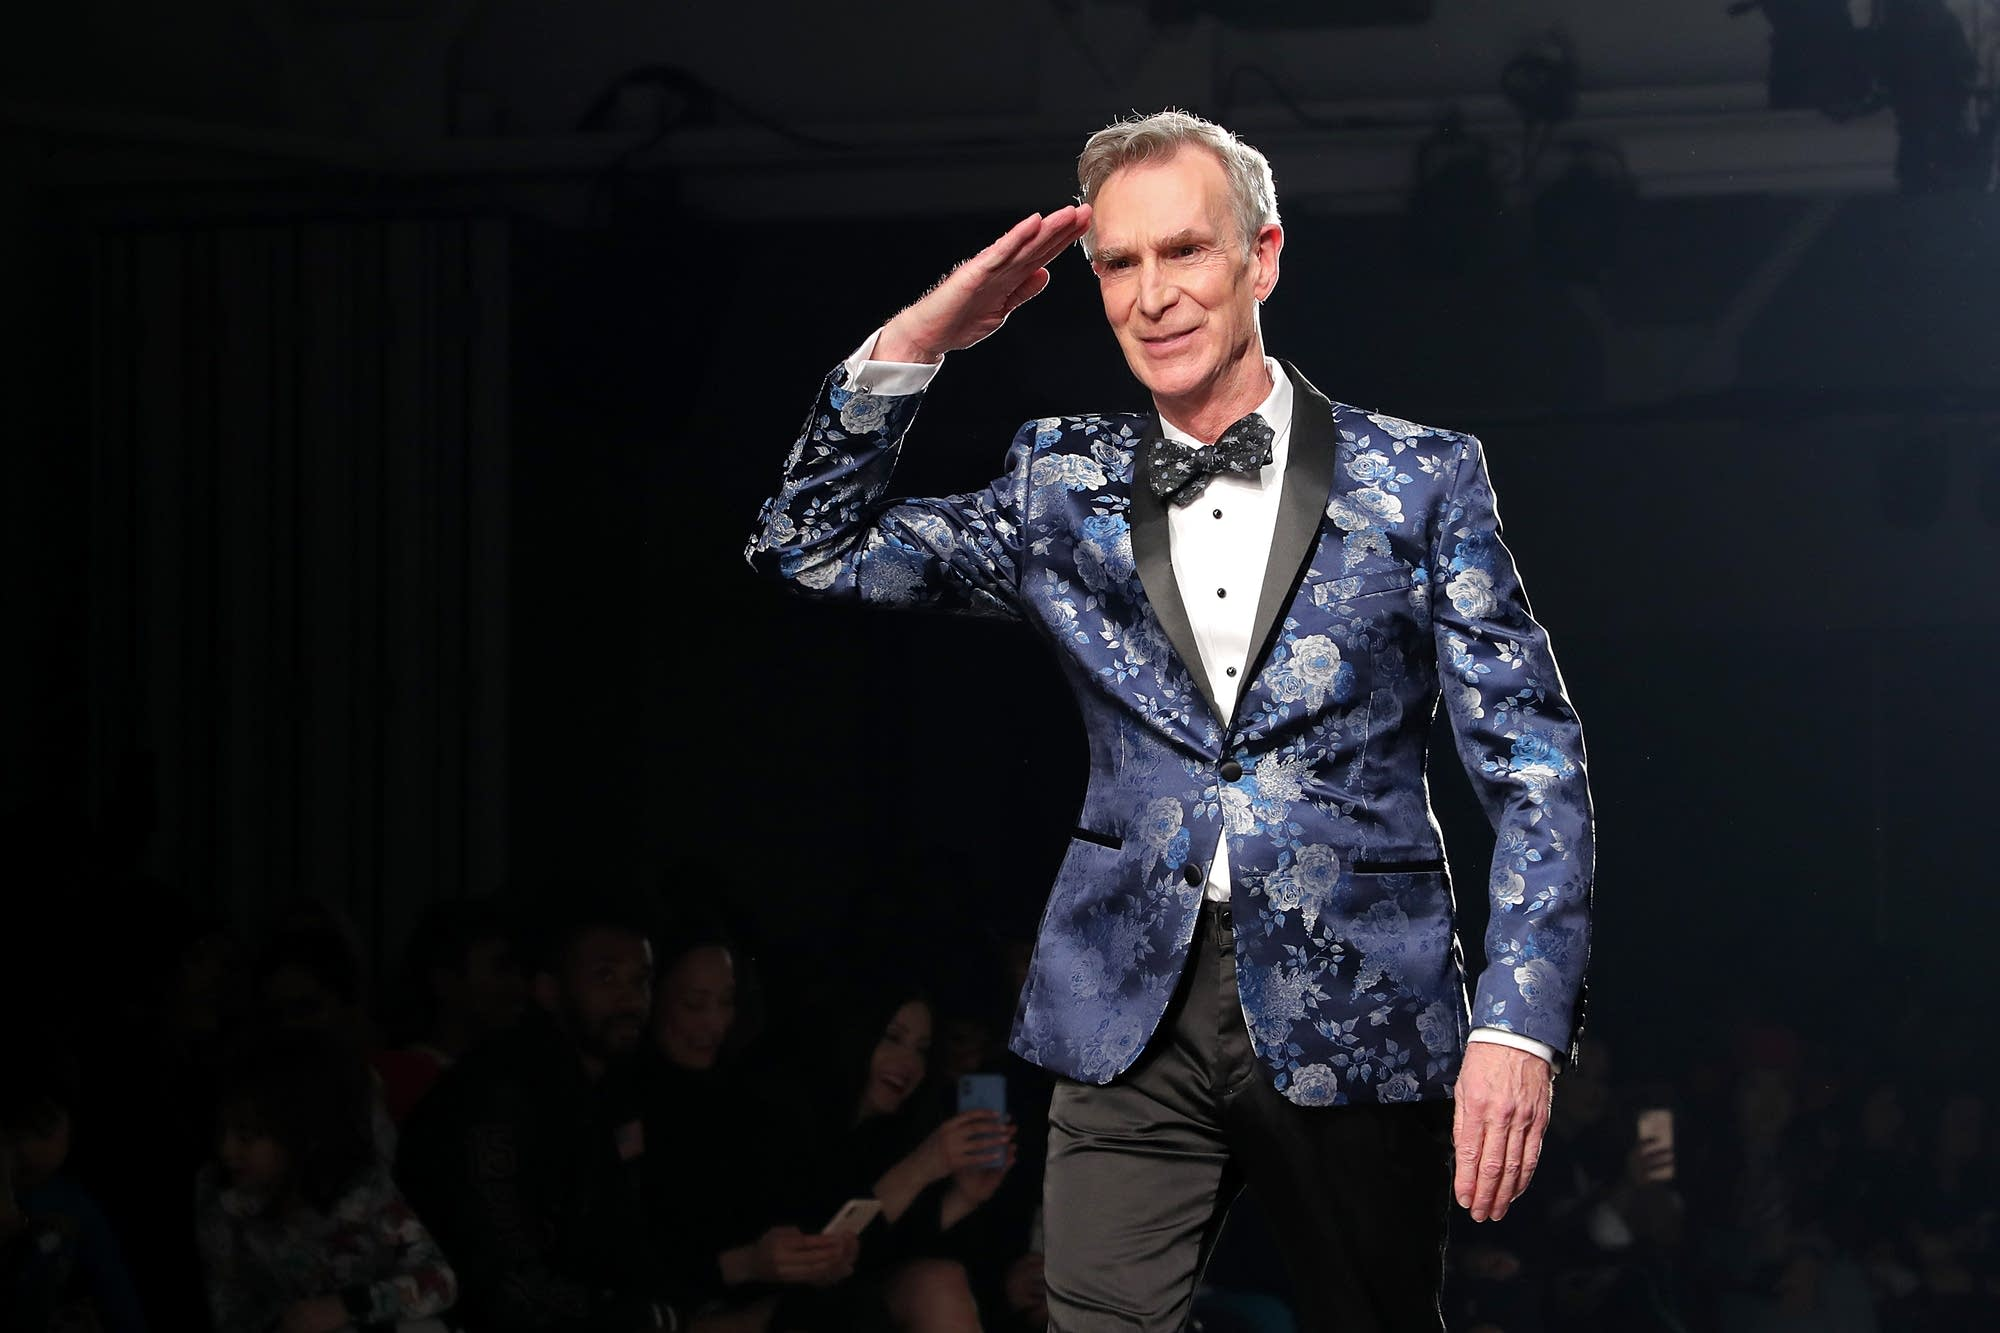 Bill Nye struts to Lizzo's 'Juice' at The Blue Jacket Fashion Show